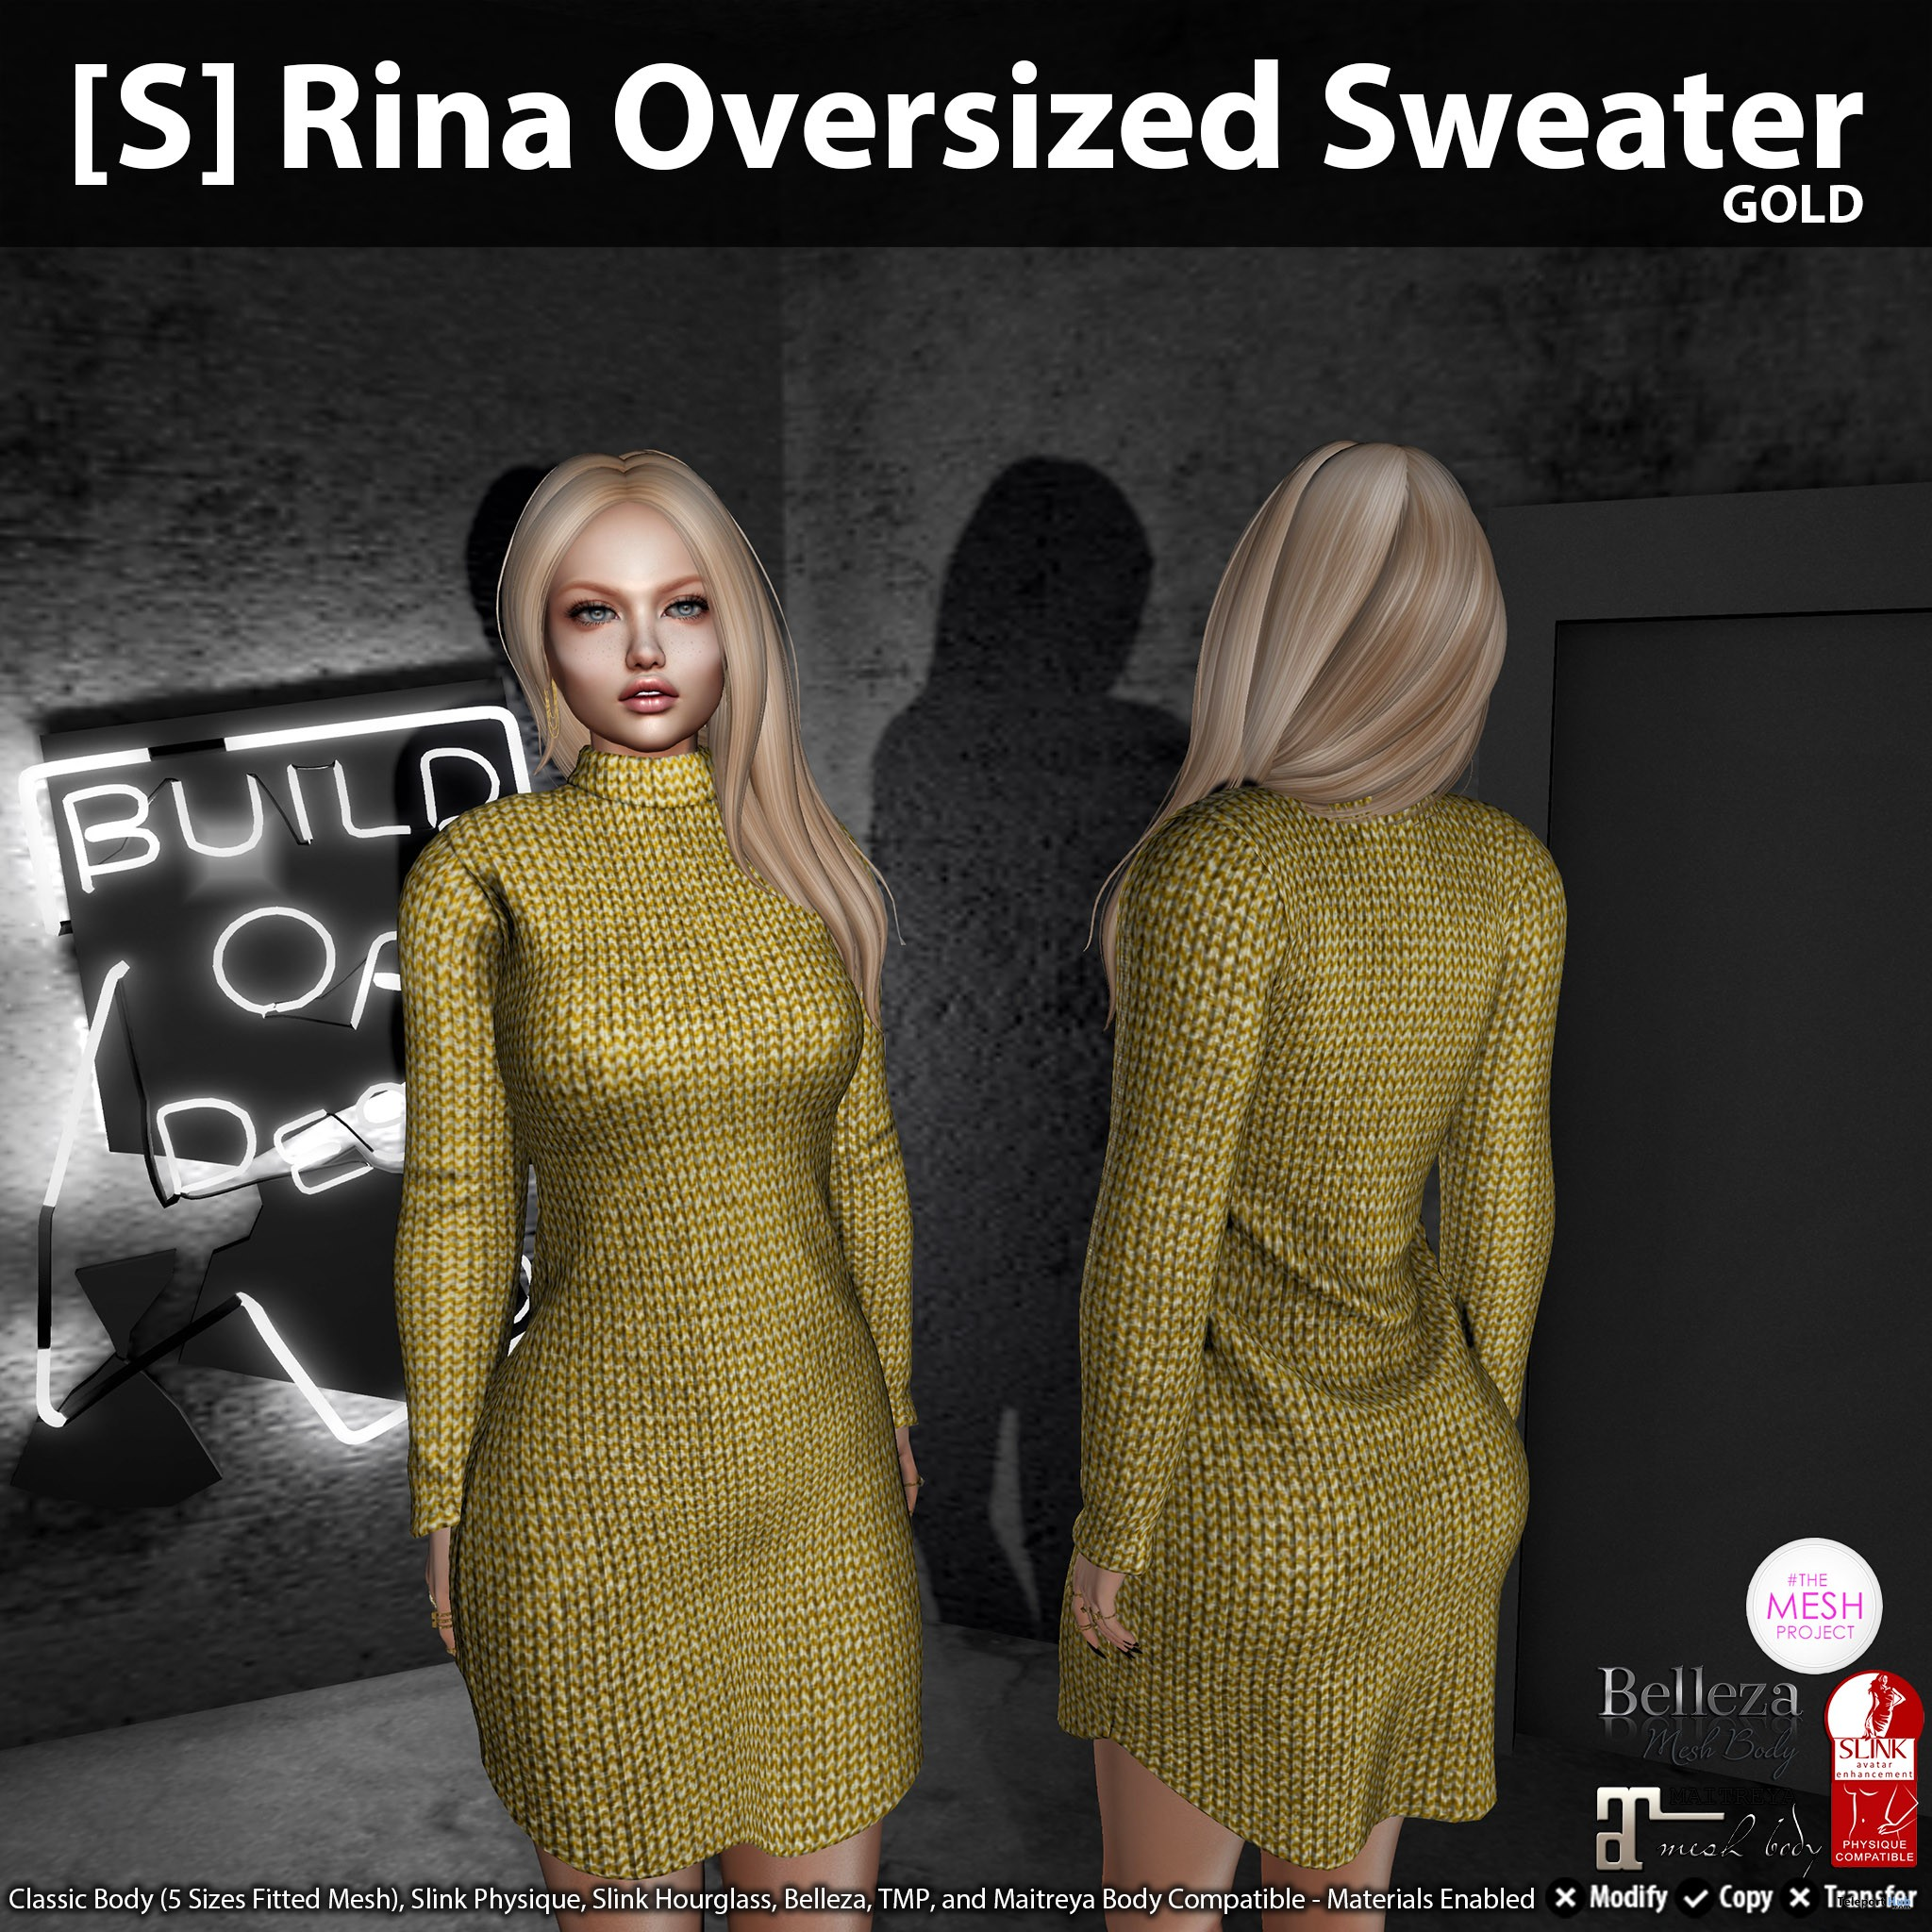 New Release: [S] Rina Oversized Sweater by [satus Inc] - Teleport Hub - teleporthub.com